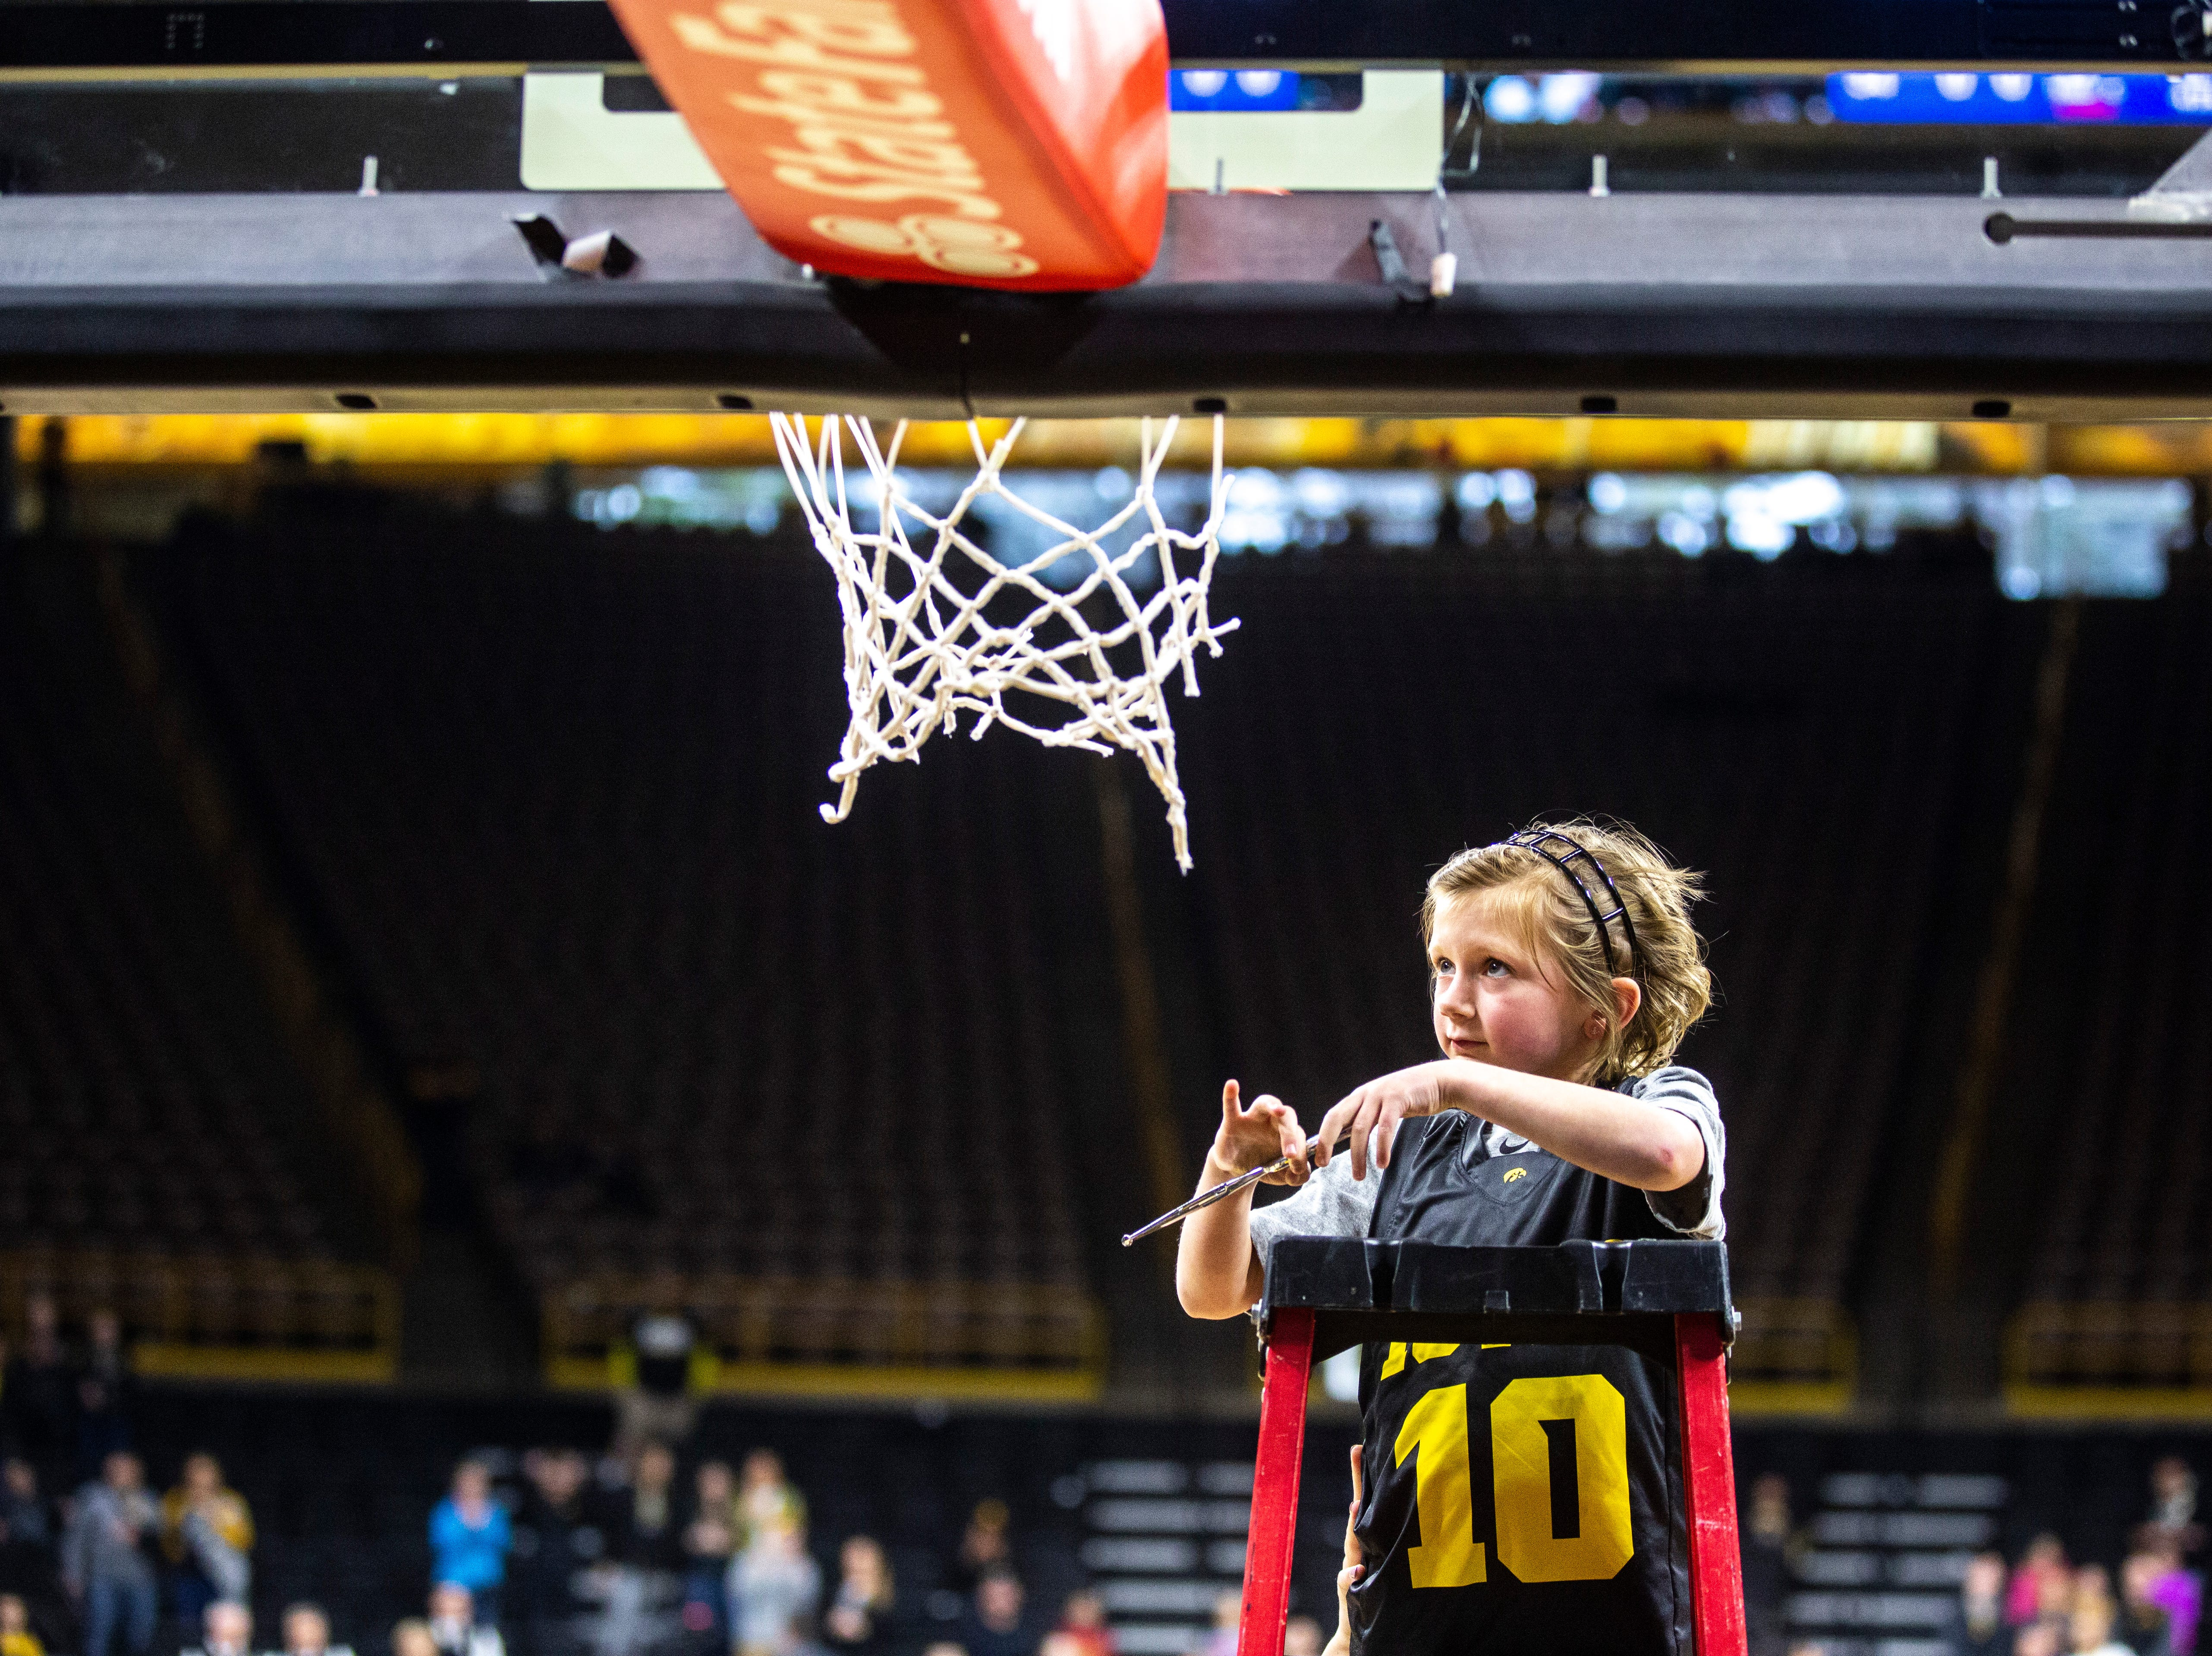 Harper Stribe, 6, cuts down the nets on the court after a NCAA women's basketball tournament second-round game, Sunday, March 24, 2019, at Carver-Hawkeye Arena in Iowa City, Iowa.